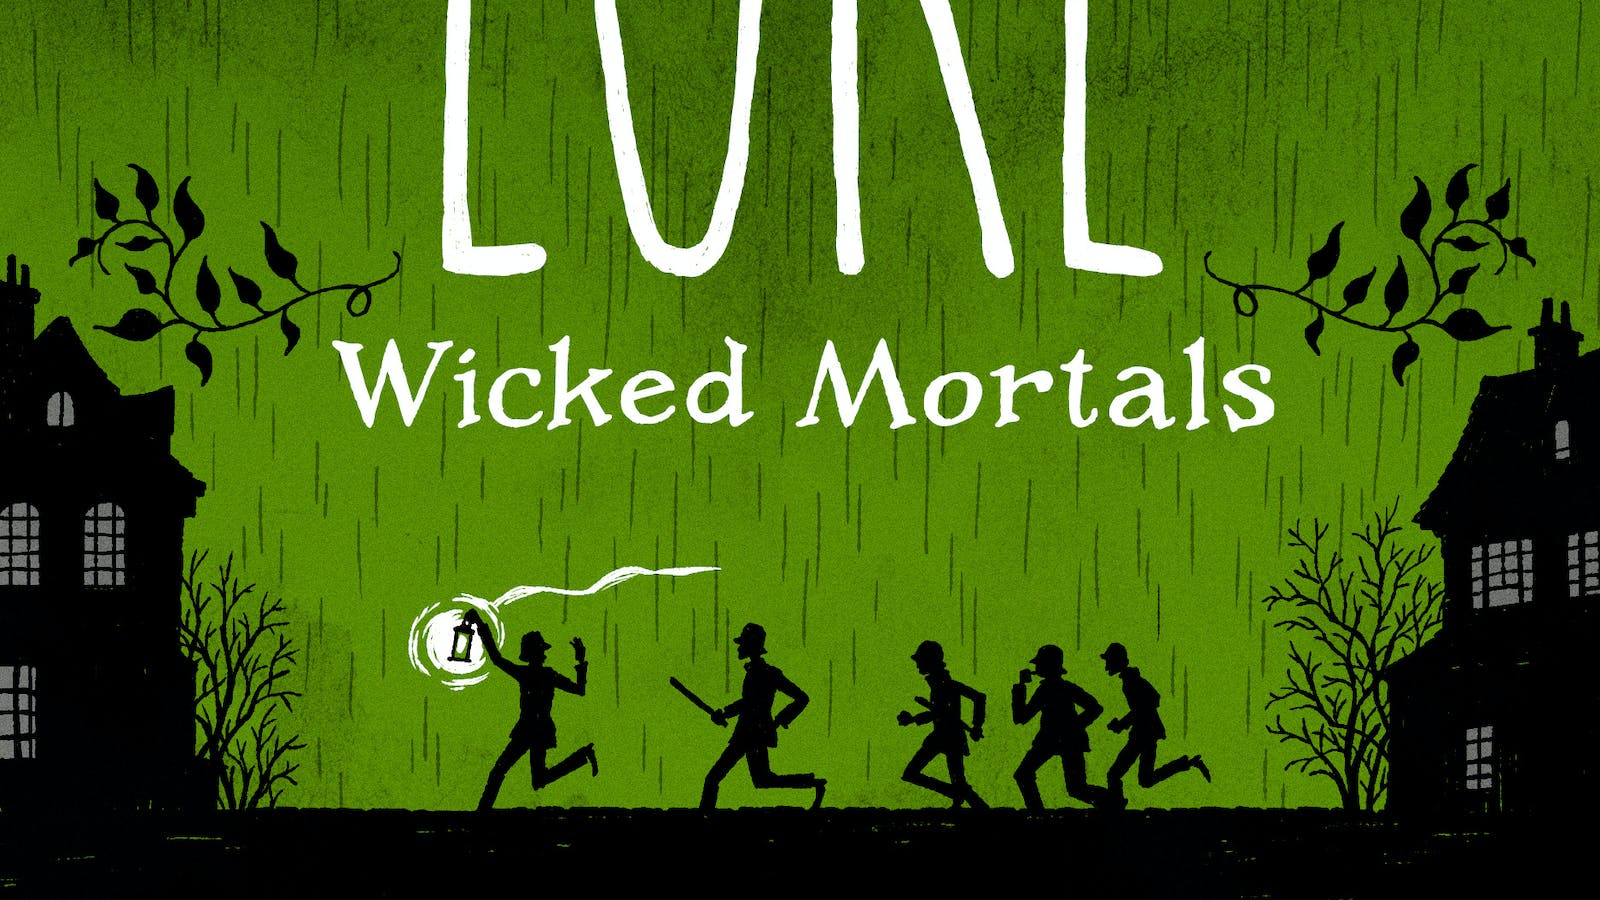 The World of Lore, Volume 2: Wicked Mortals: Now a major